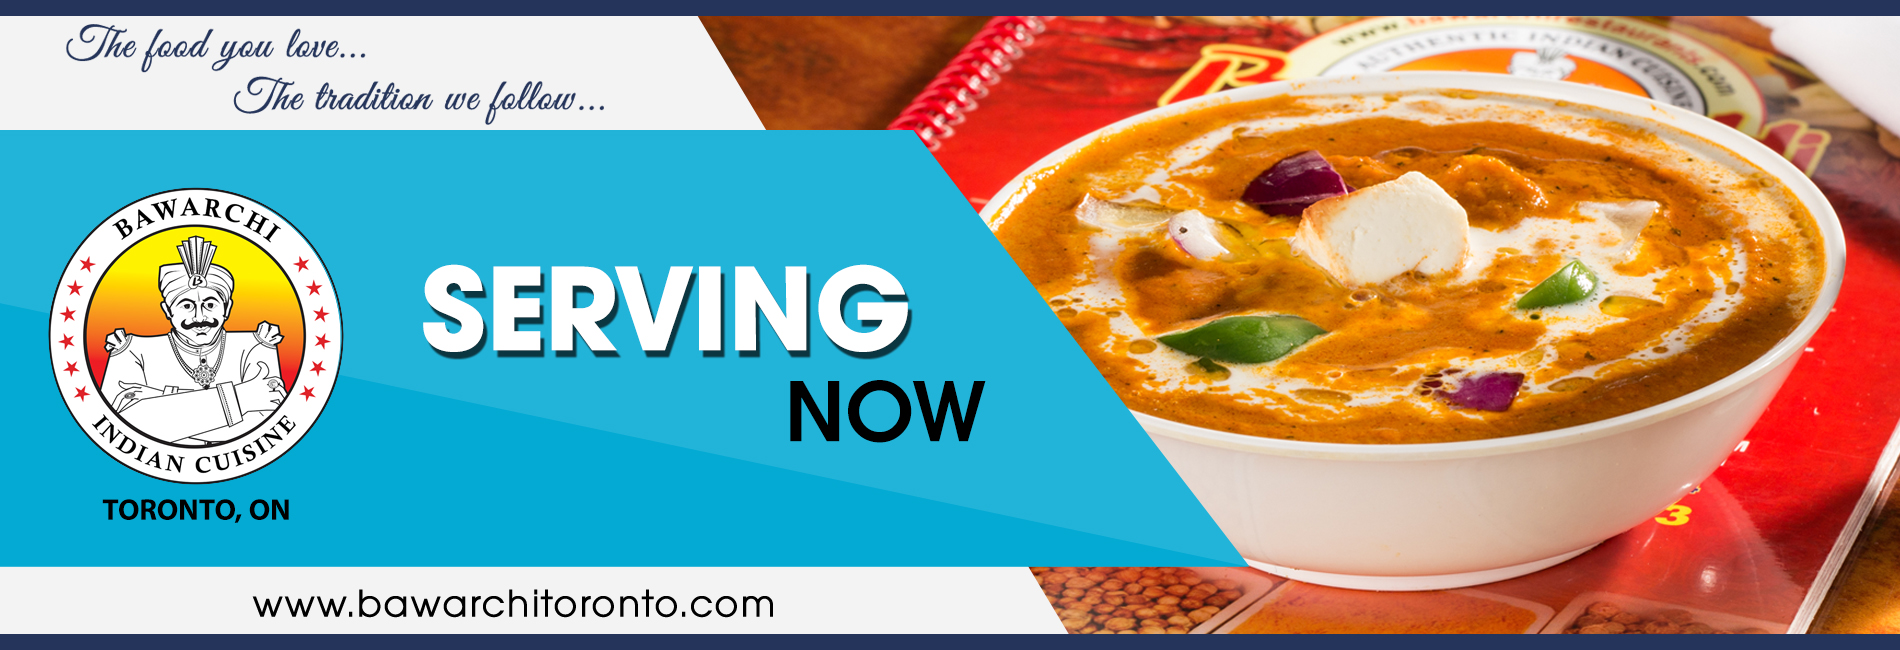 Bawarchi Toronto, ON - Now Open